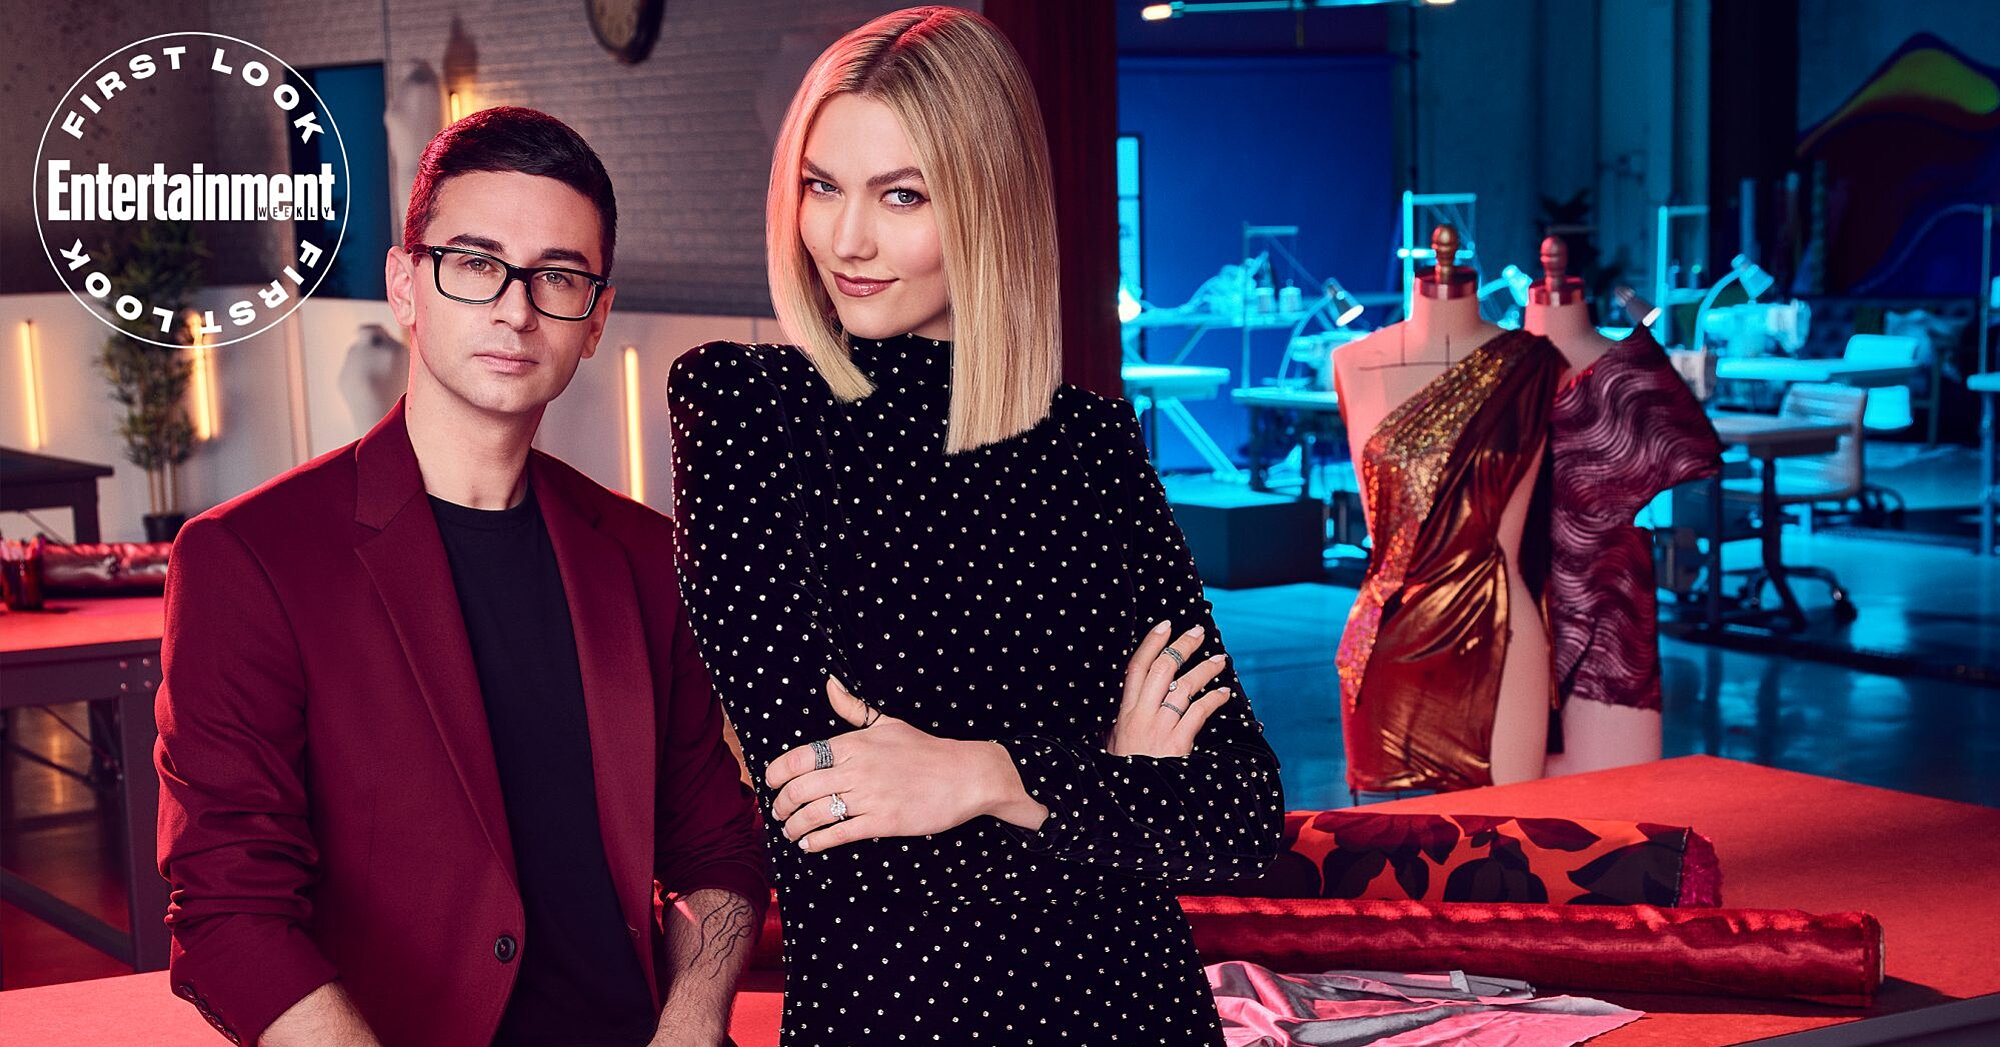 Project Runway Season 18 Exclusive Look At Contestants And Celeb Guests Ew Com